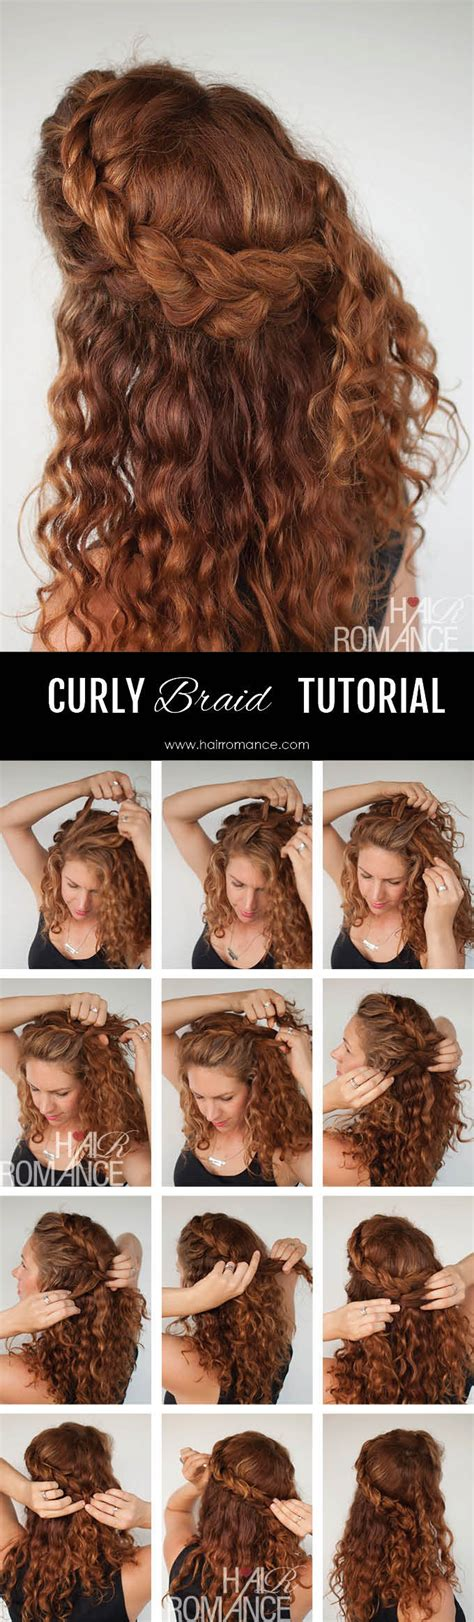 Curly Hairstyles For Tutorial by Curly Hair Tutorial The Half Up Braid Hairstyle Hair